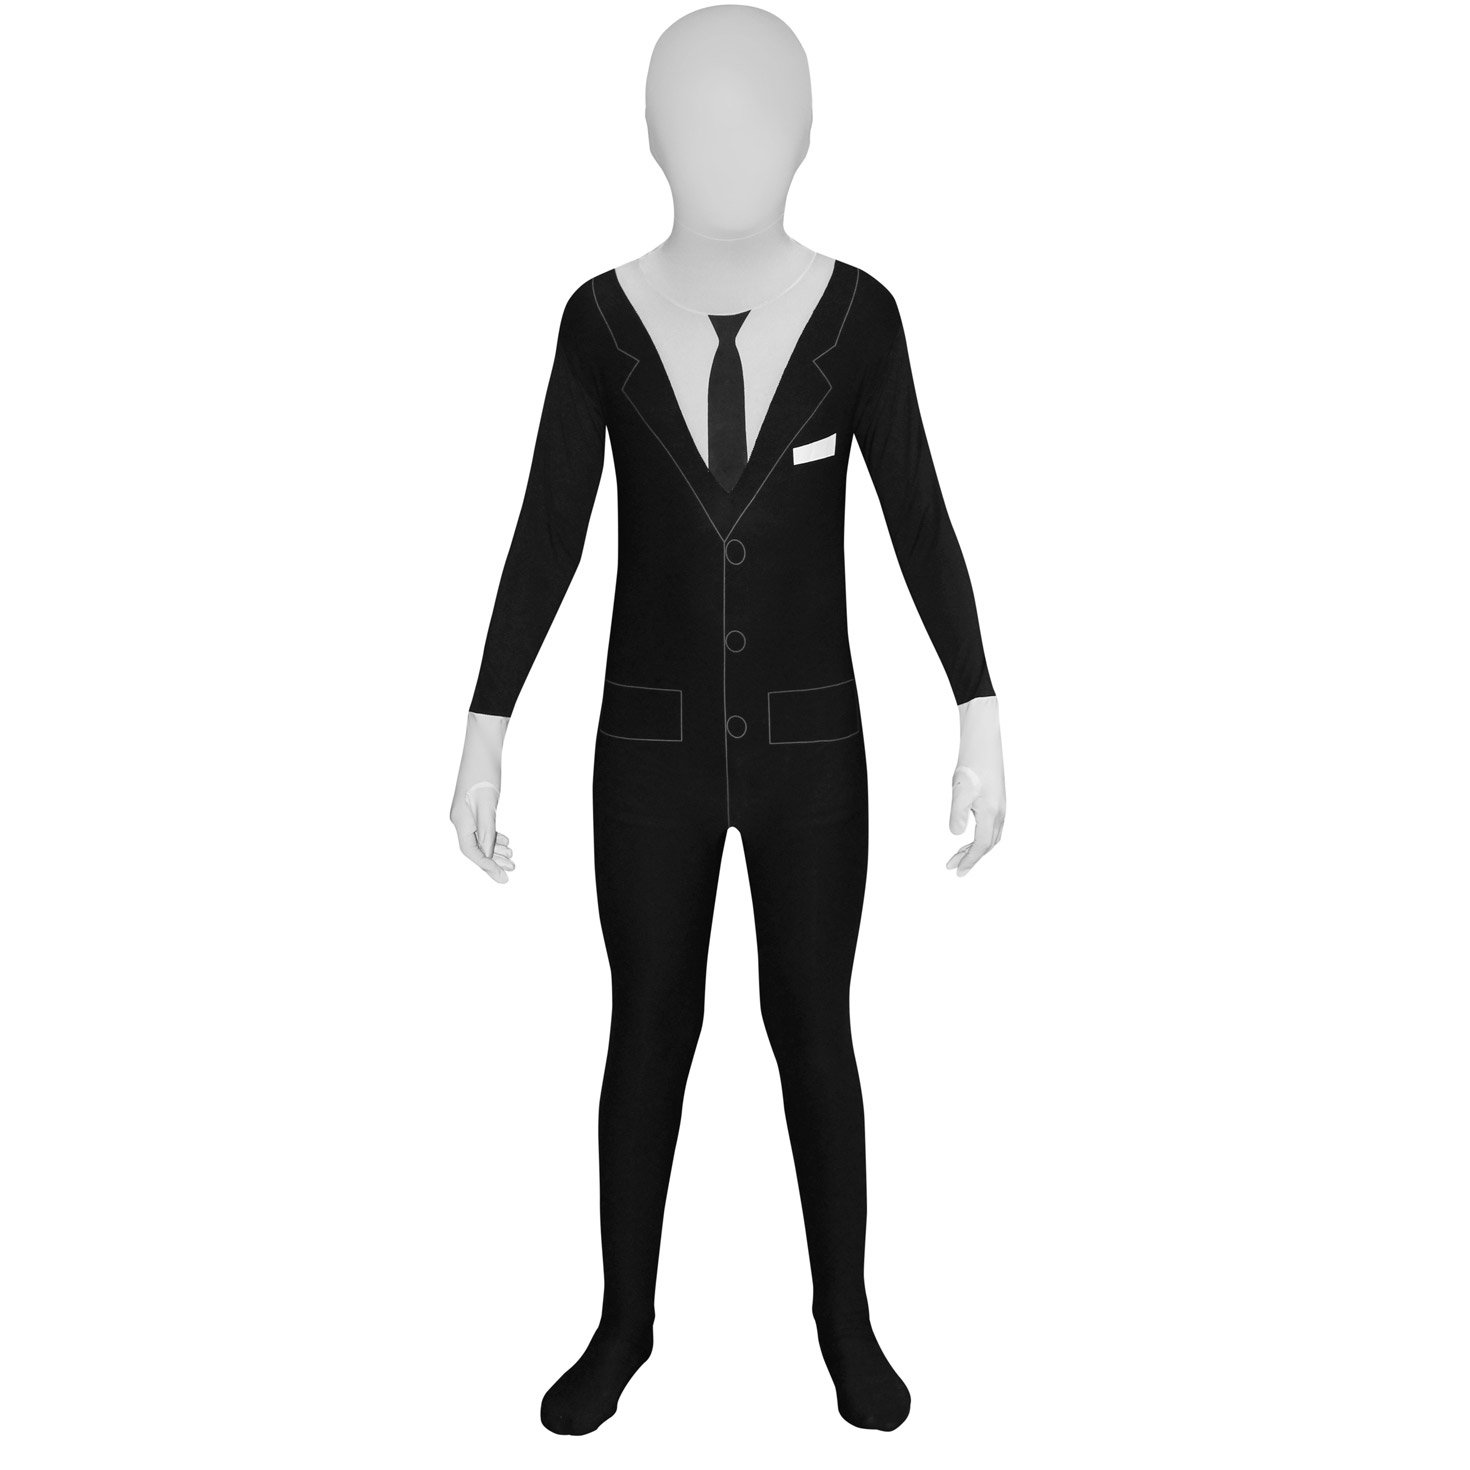 Morphsuits Slender Man Kids Costume - size Medium 3'11-4'5 (119cm-136cm)